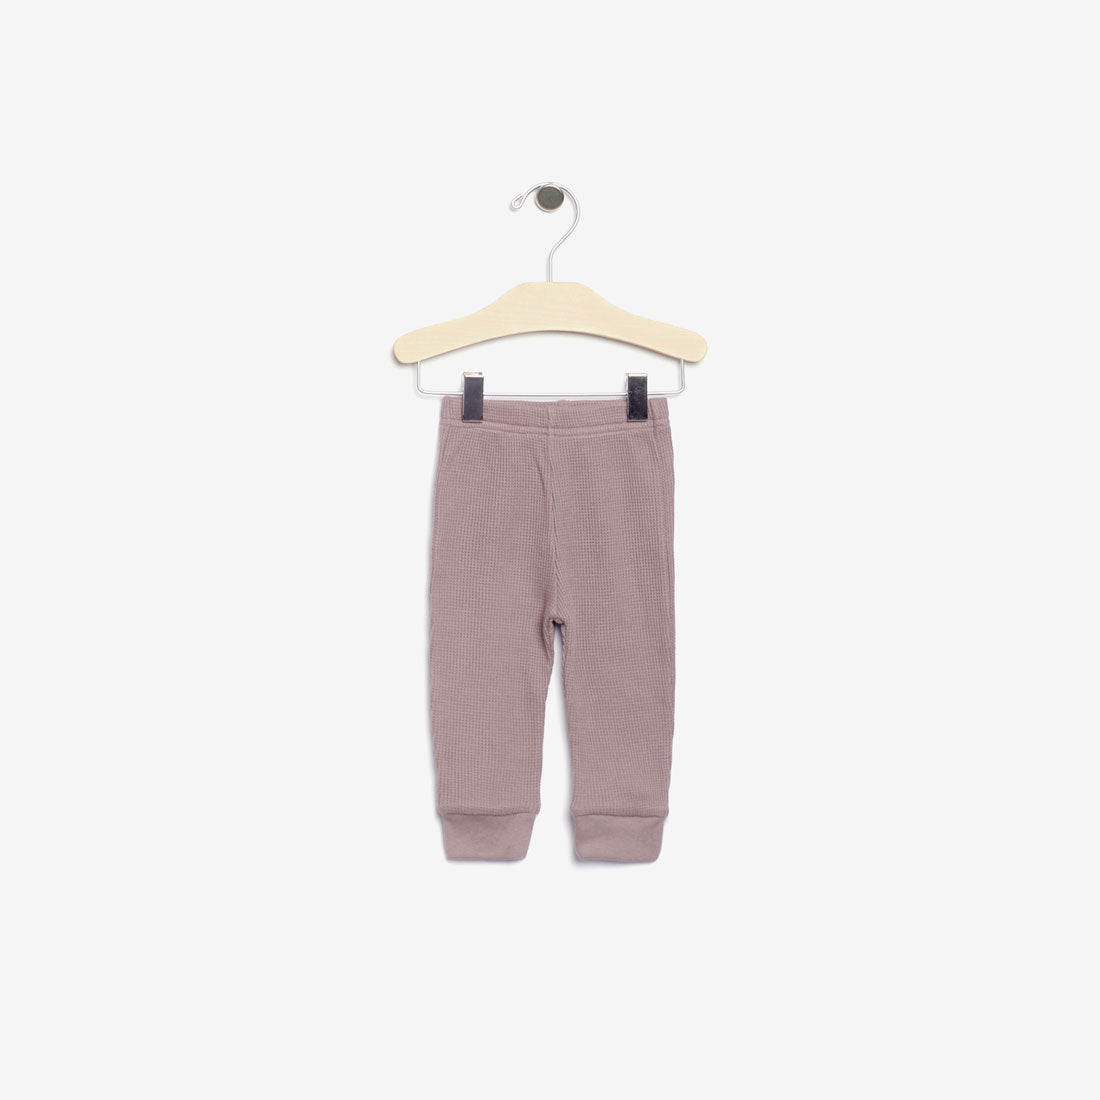 Organic Thermal Waffle-Weave Baby Pant - Pale Mauve